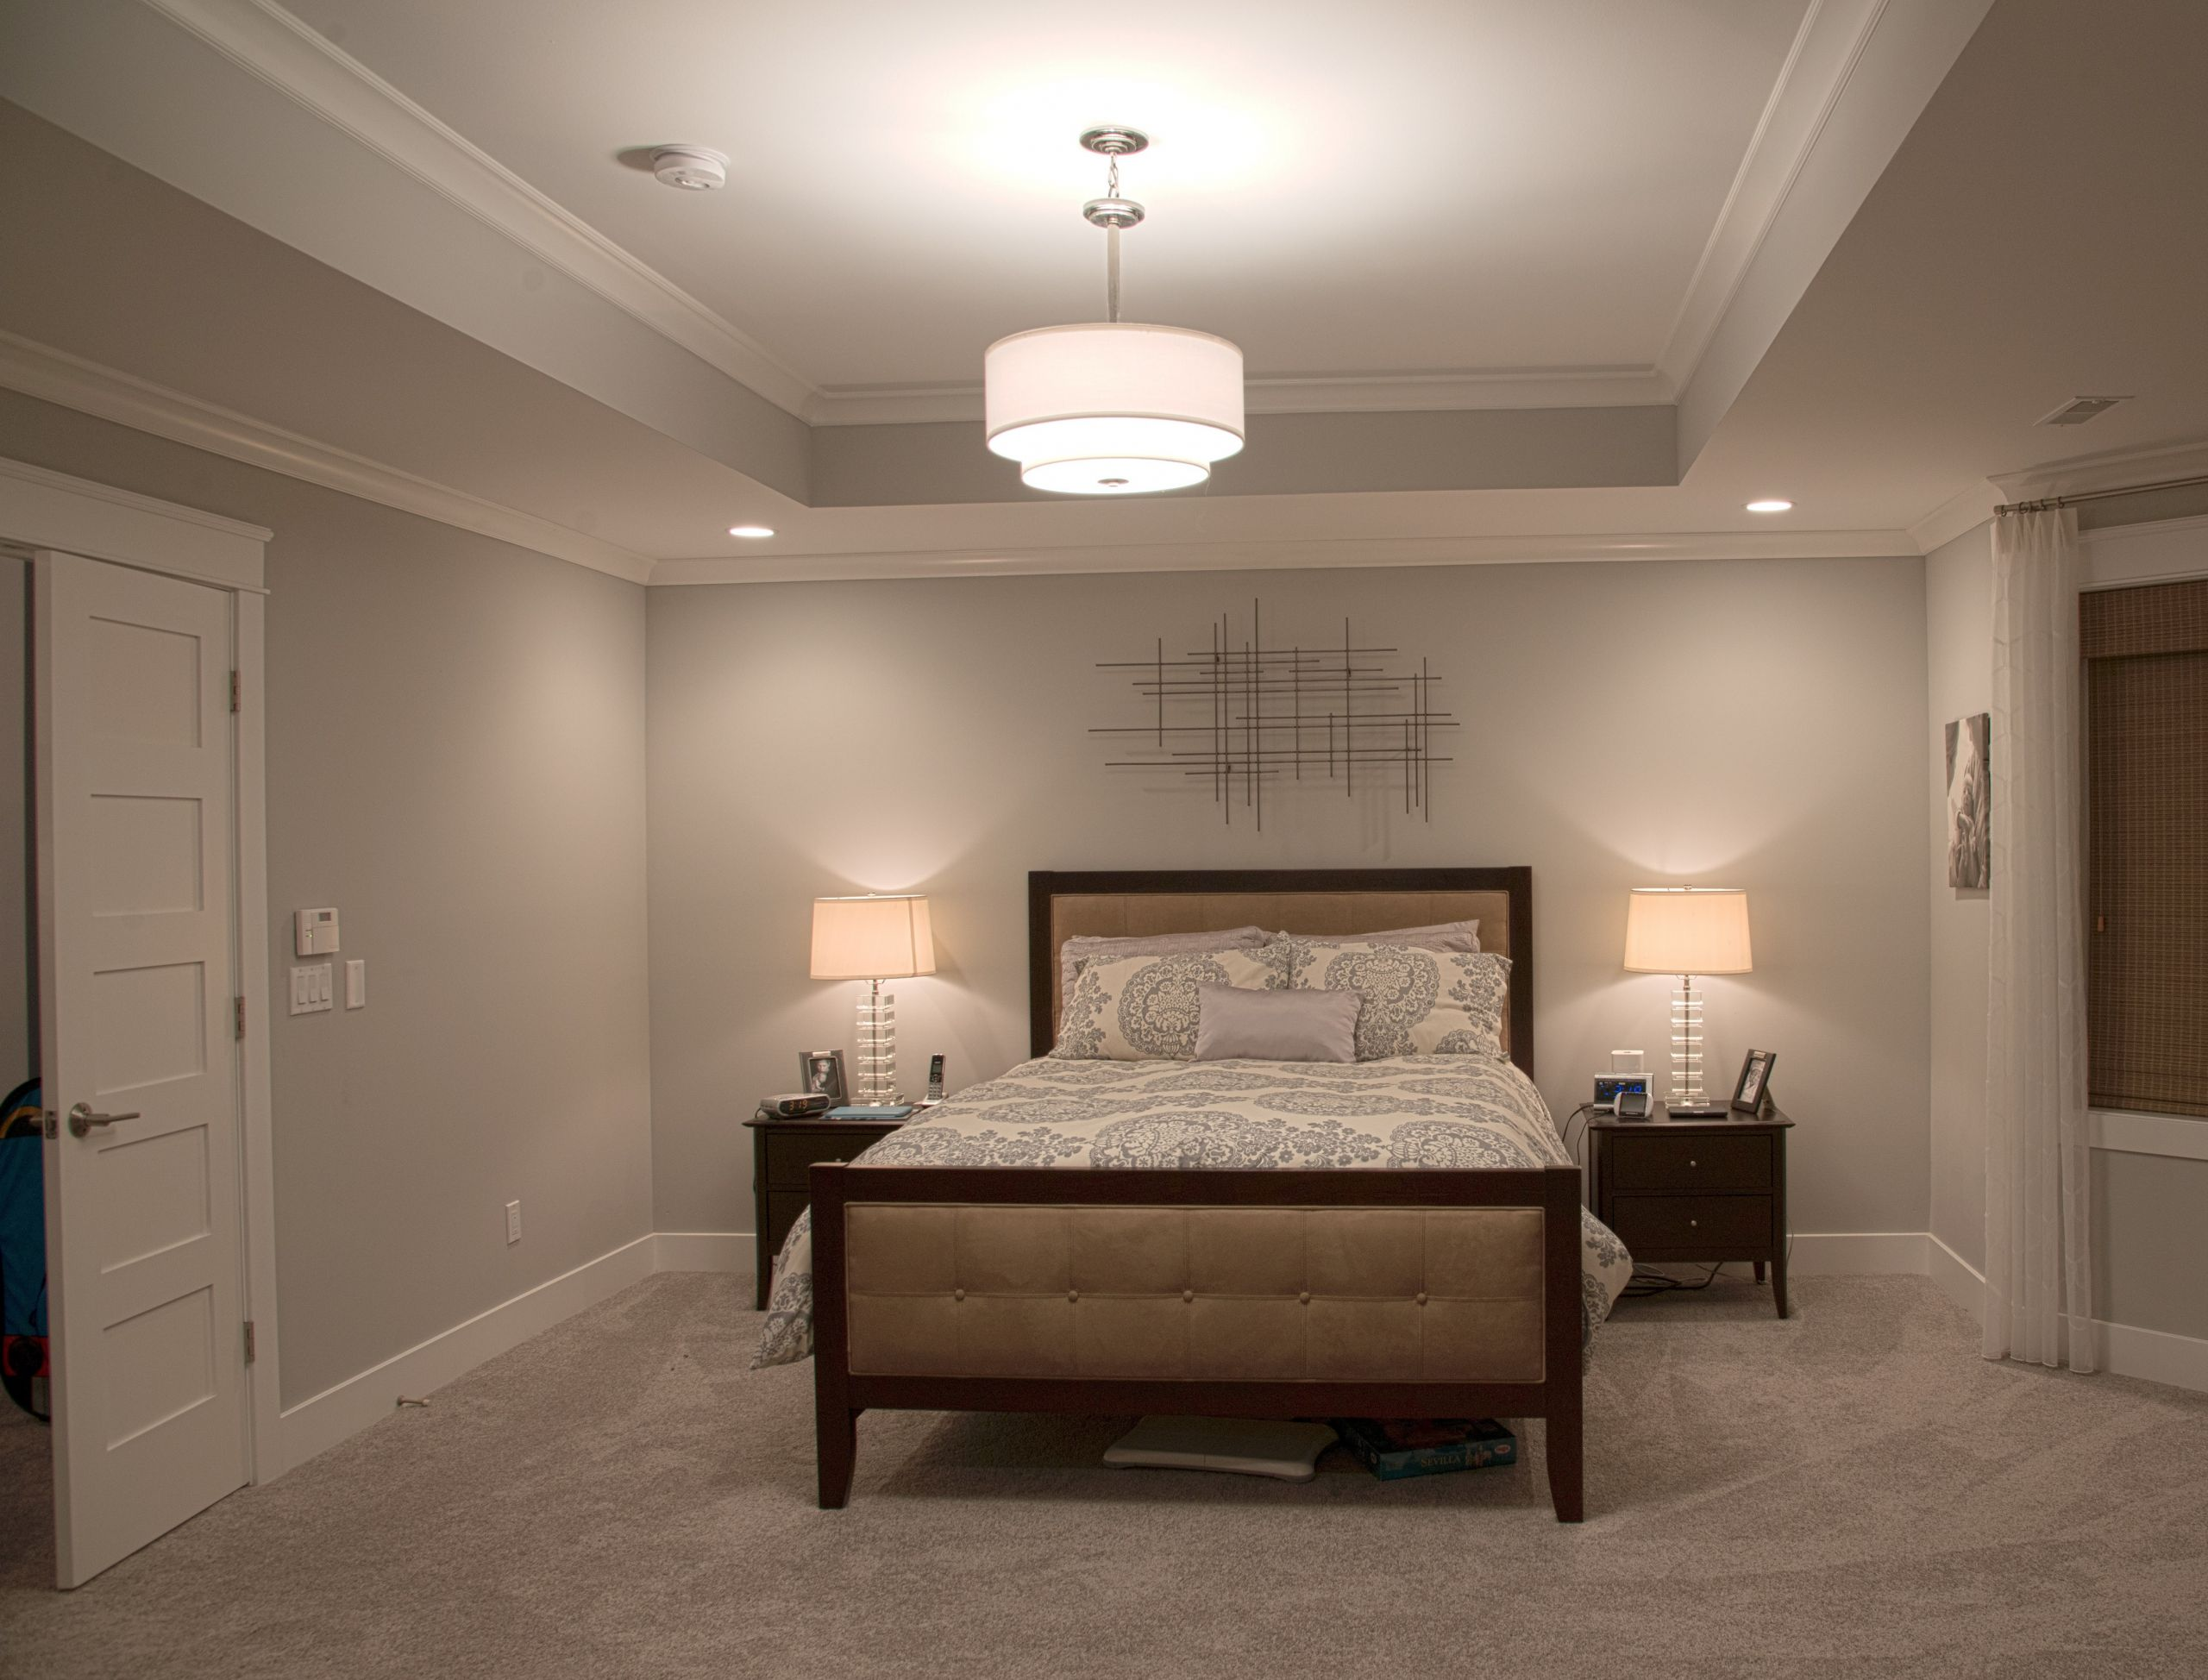 Ceiling Lights Bedroom  What s Your Design Style Gross Electric